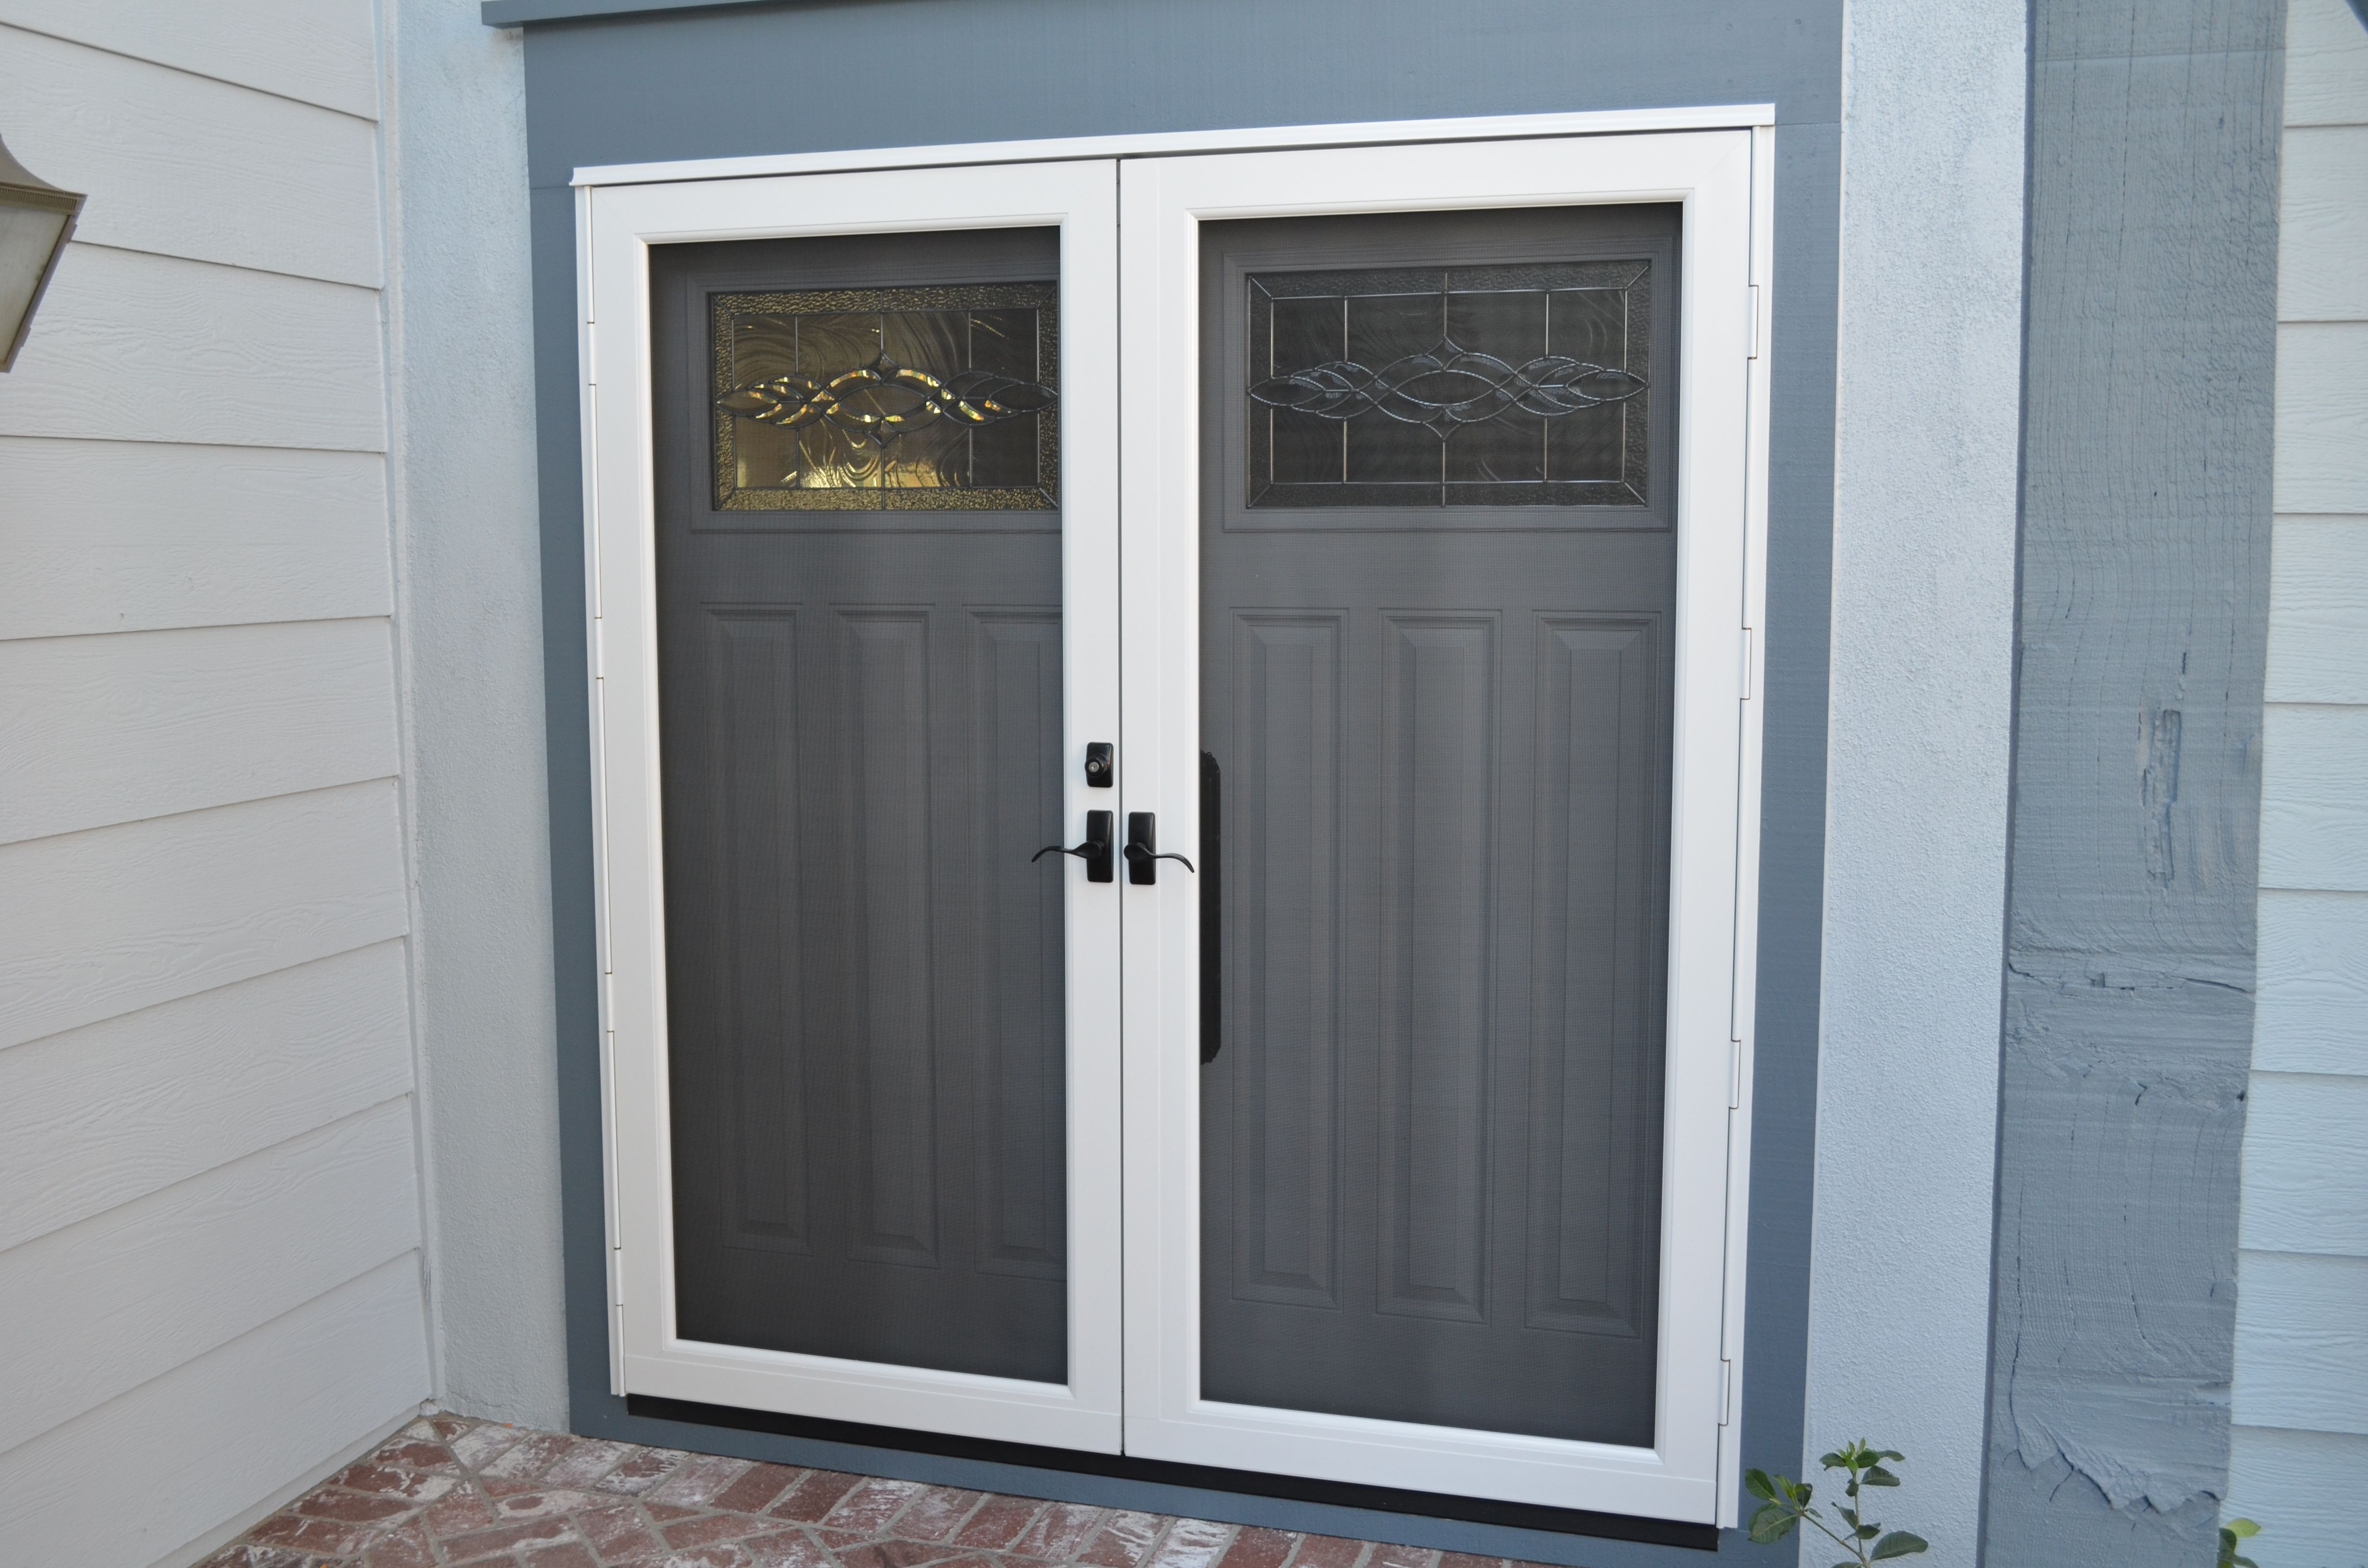 3264 #695F4B Provia Screens Entry Doors By Today's Windows And Doors Pinterest wallpaper Provia Entry Doors 45754928